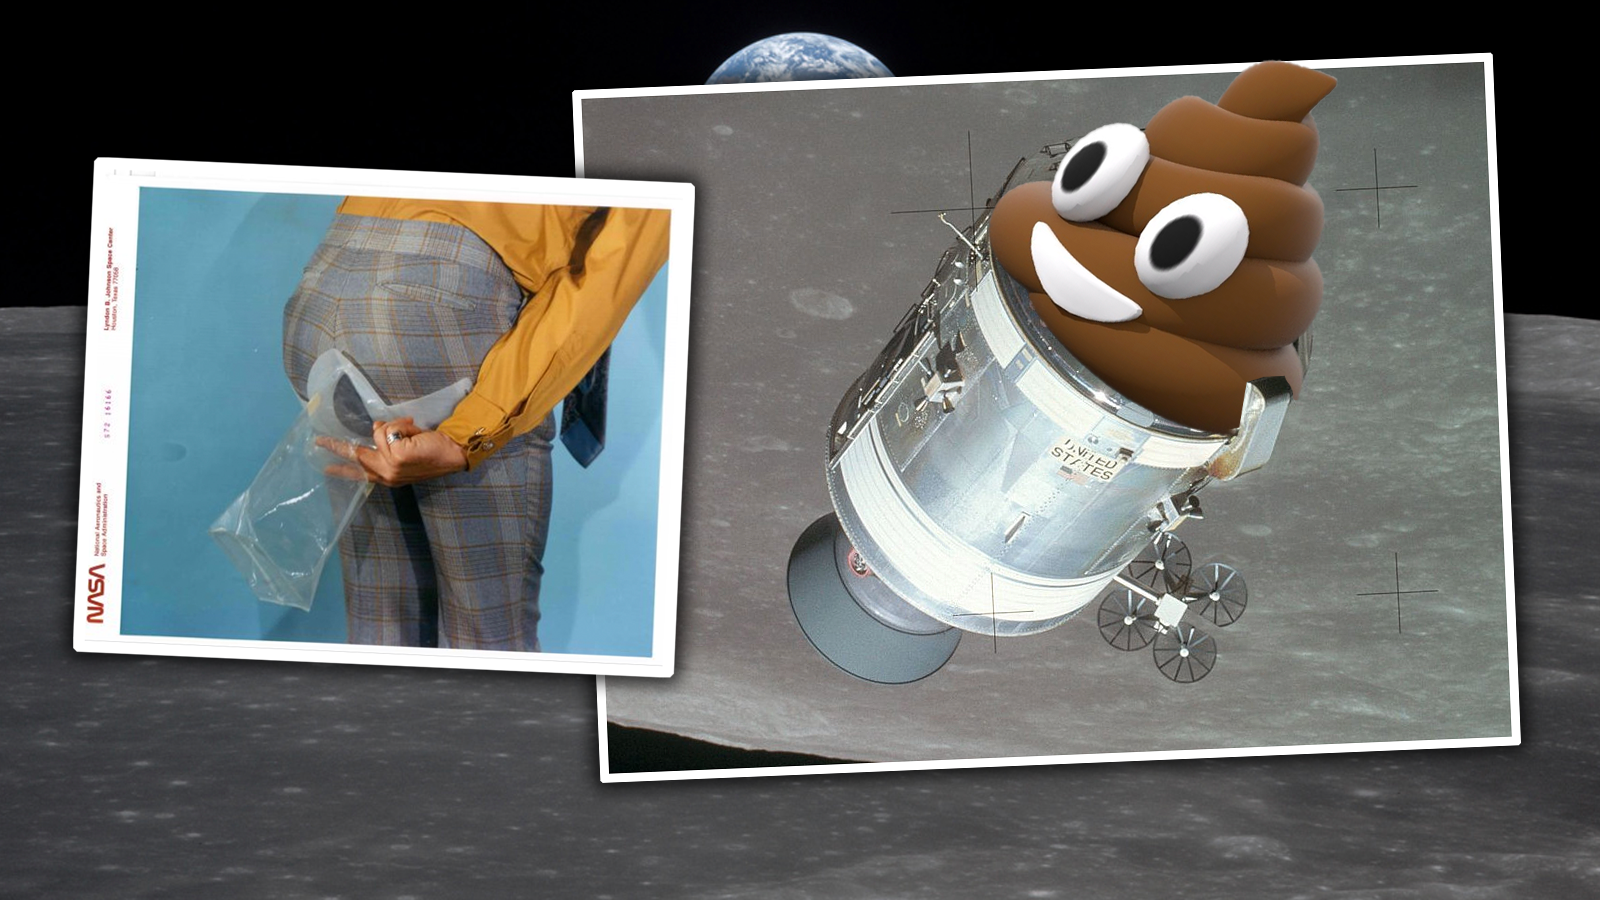 I Took a Dump the Same Way the Apollo Astronauts Did—and Dear God Was It Awful